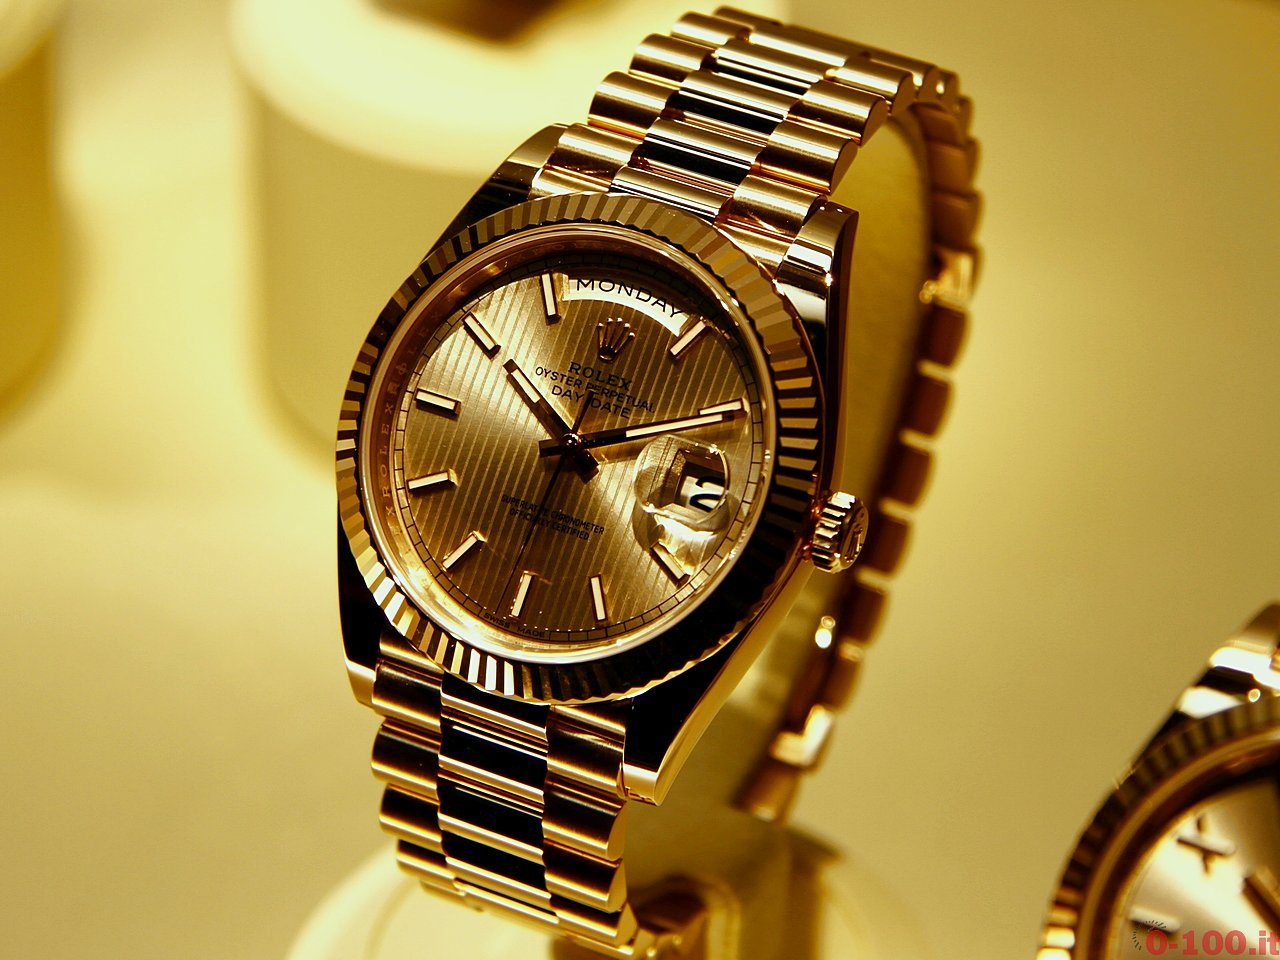 baselworld-2015_rolex-day-date-40-0-100_20